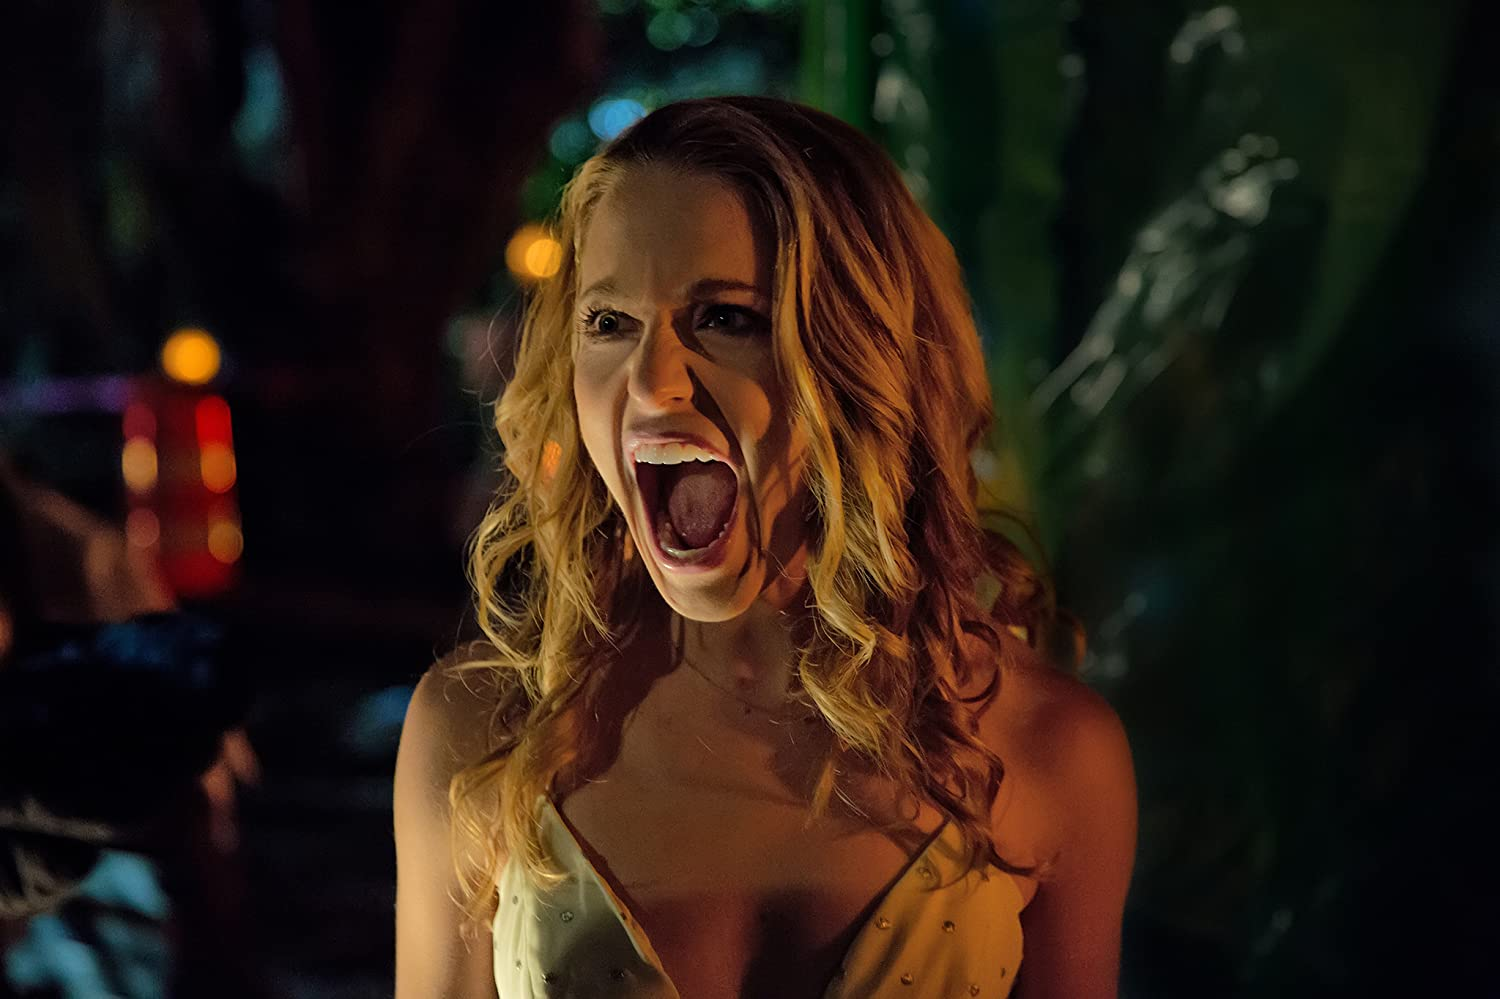 Jessica Rothe in Happy Death Day (2017)